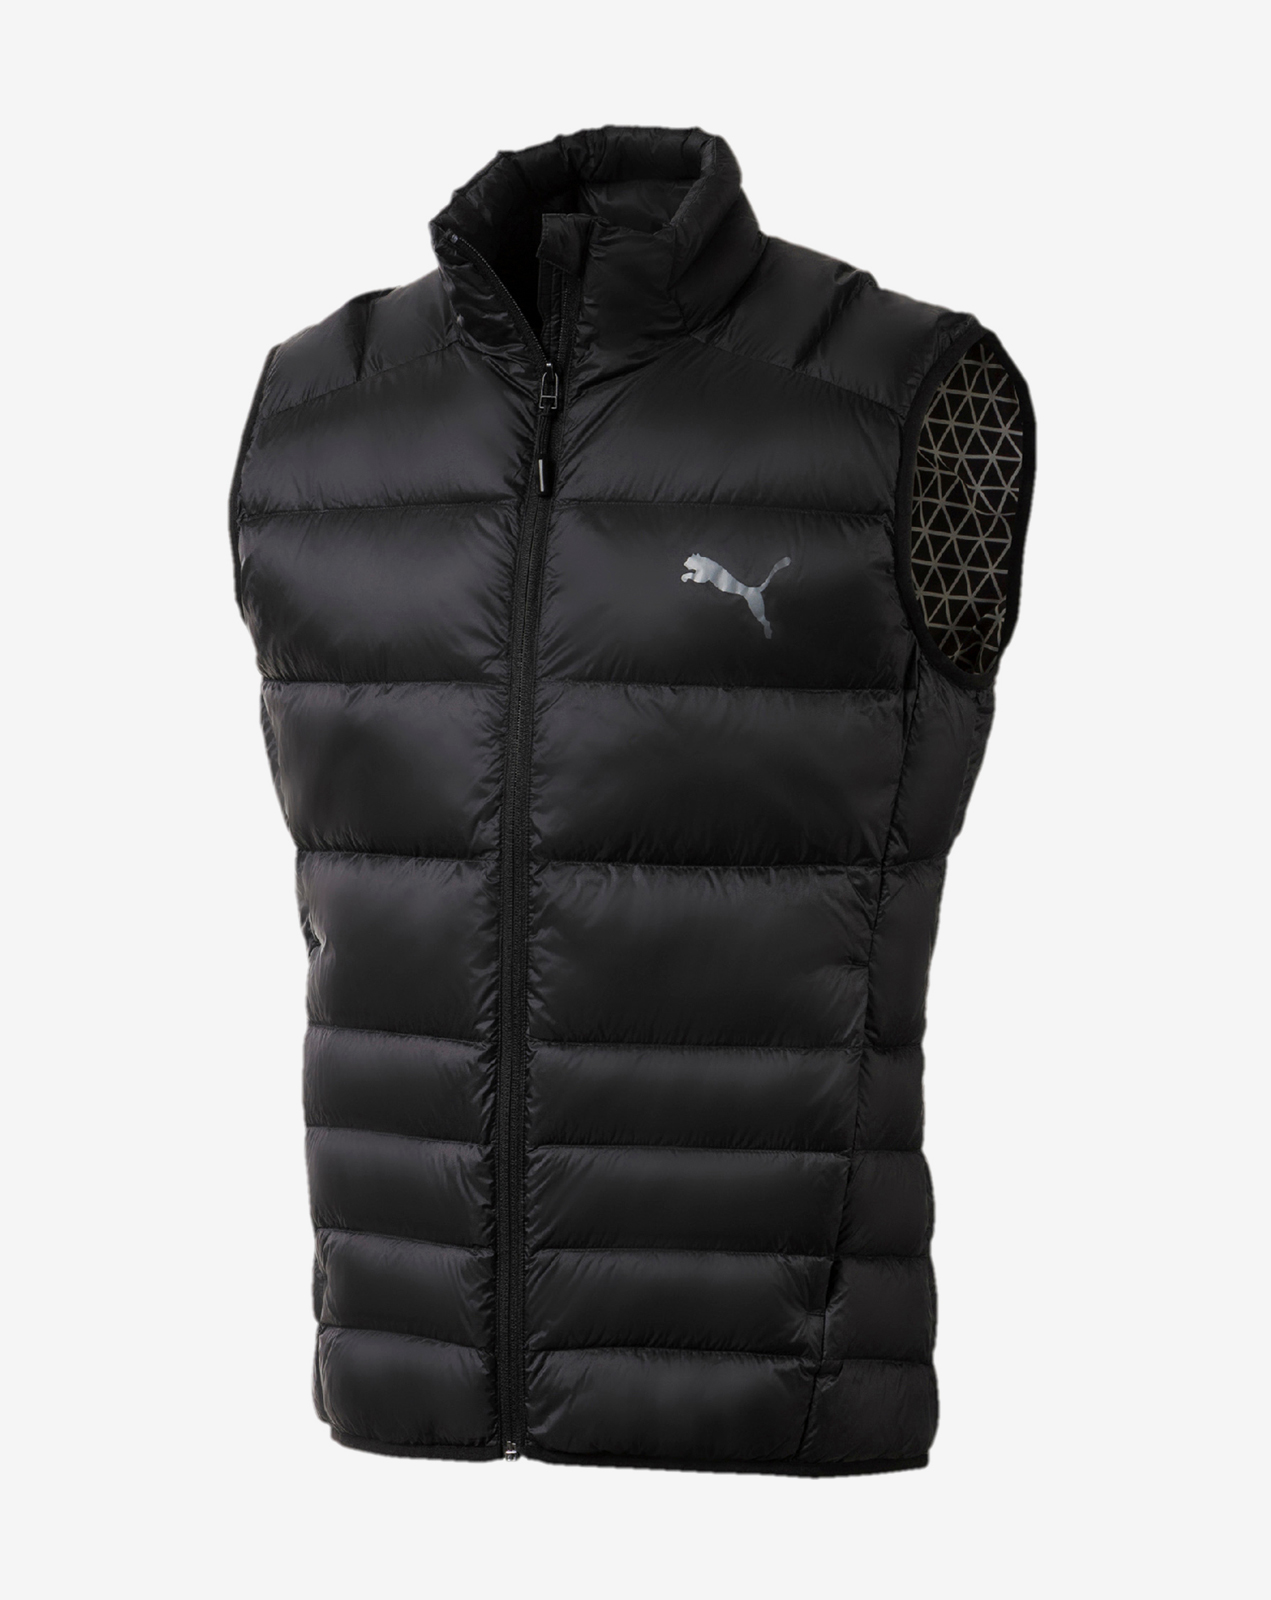 PWRWarm packLITE 600 DOWN VST Puma Black